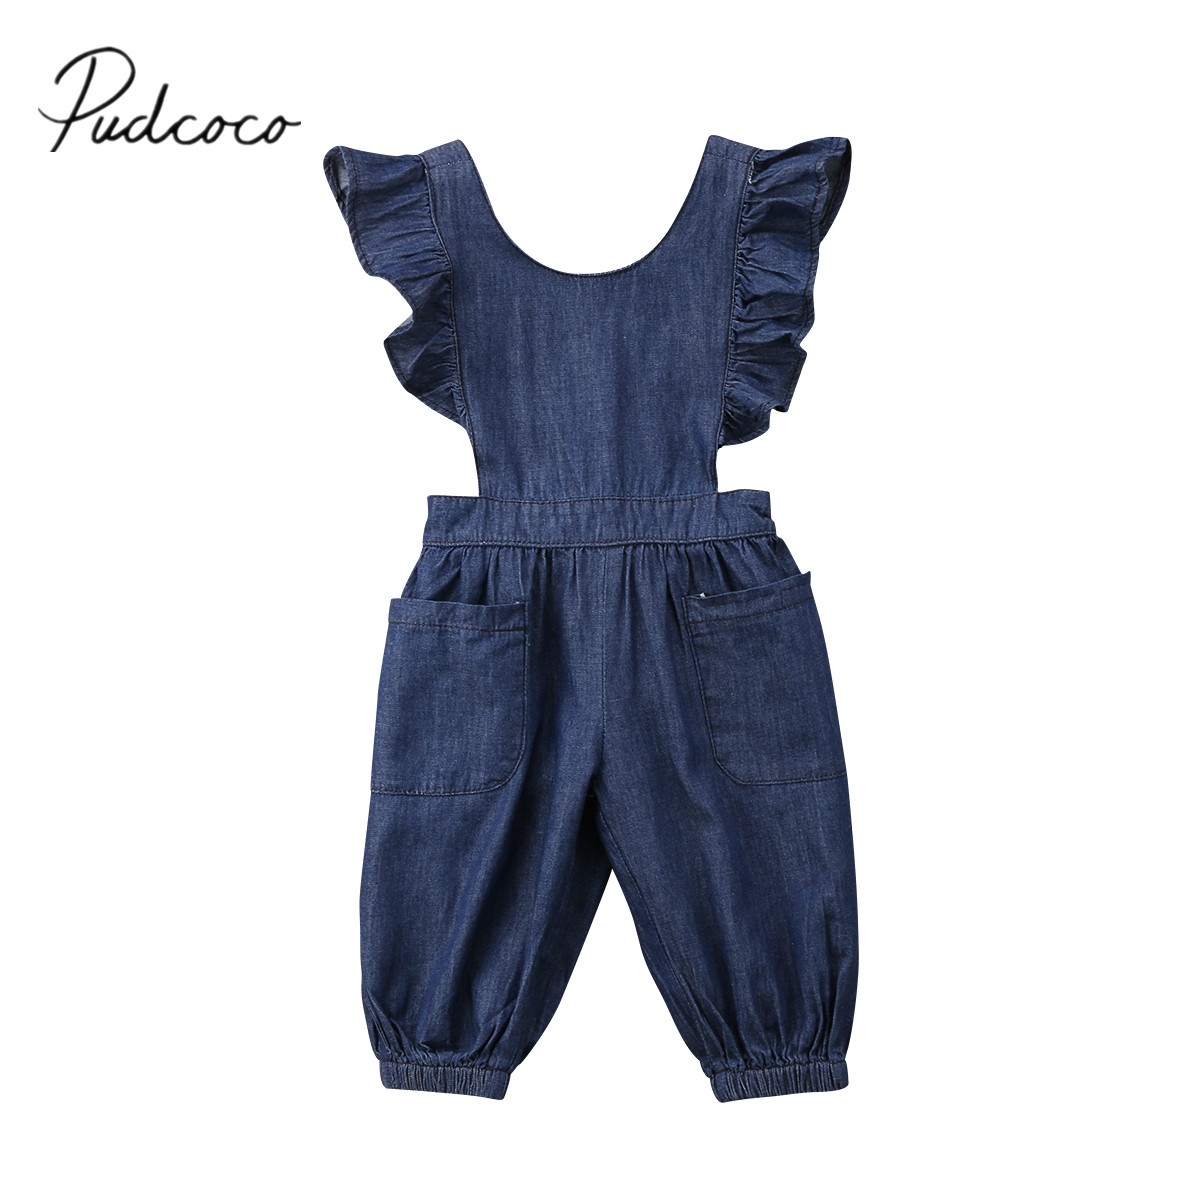 2018 Brand New Cute Toddler Infant Kids Baby Girls Ruffle Jumpsuit Denim Romper Long Pants Outfits Backless Summer Clothes 1-6T